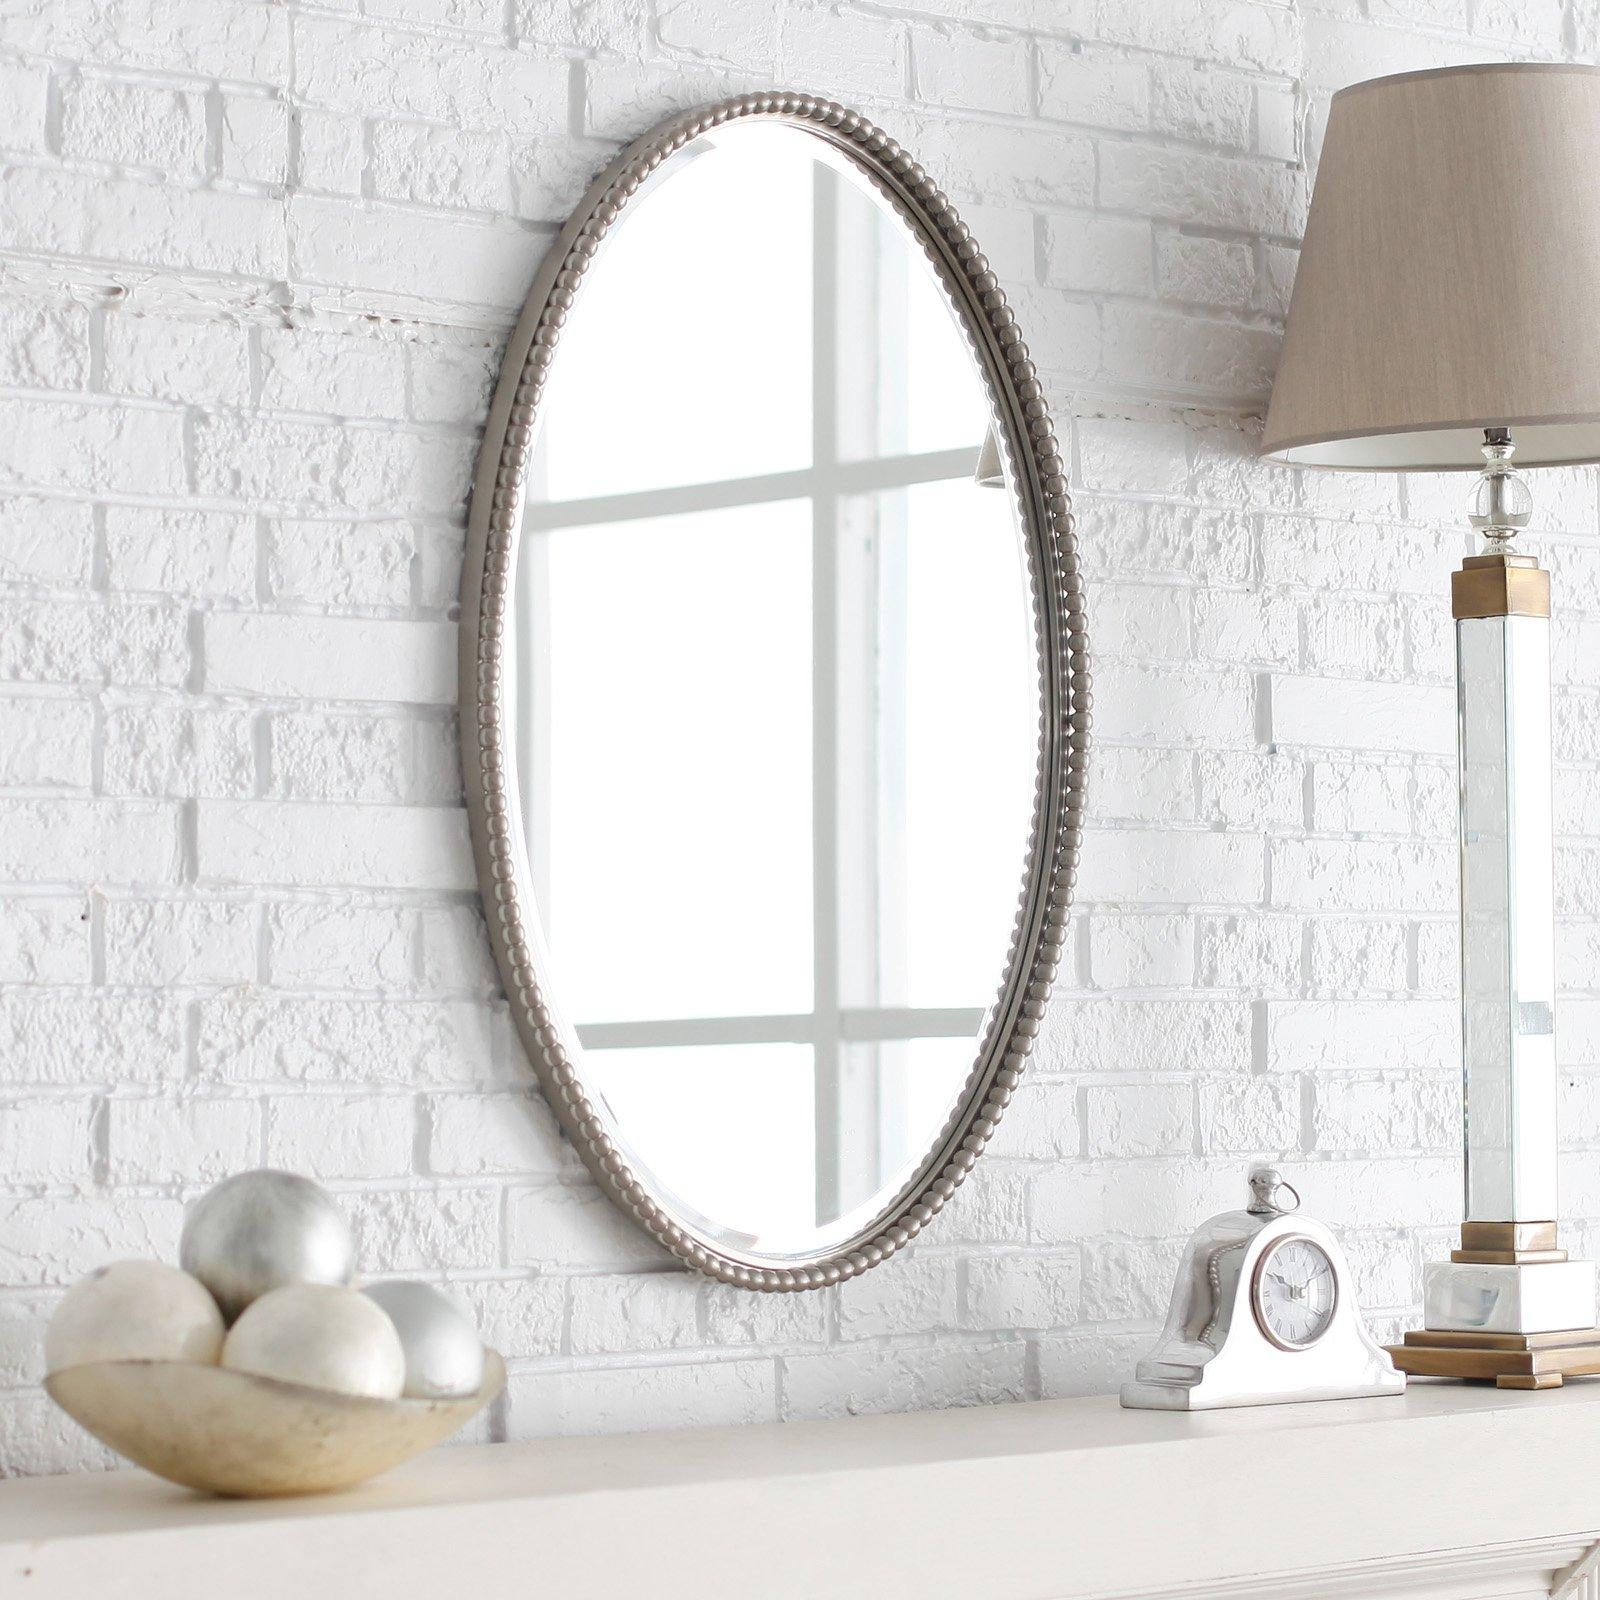 Uttermost Sherise Nickel Finish Oval Beveled Mirror – 22W X 32H In Pertaining To Large Oval Mirror (Image 20 of 20)